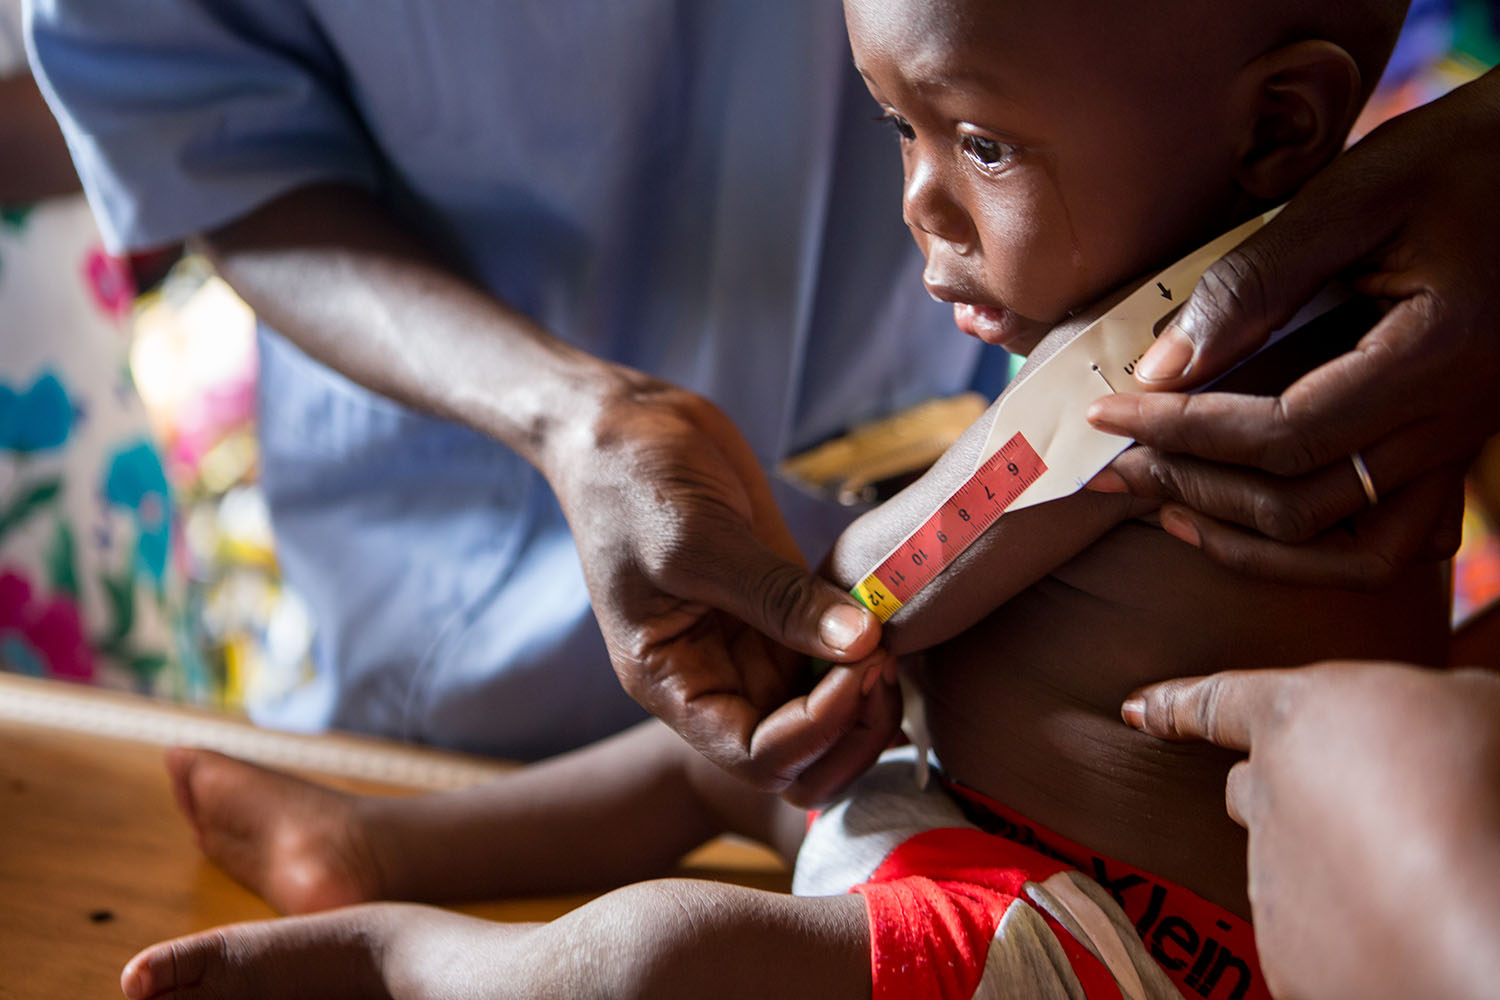 At the clinic, children are examined for SAM (severe acute malnutrition) their MUAC is taken as well as the measurements of their upper arms. UNICEF continues to emphasise prevention activities and increasing access to quality care for severely malnourish